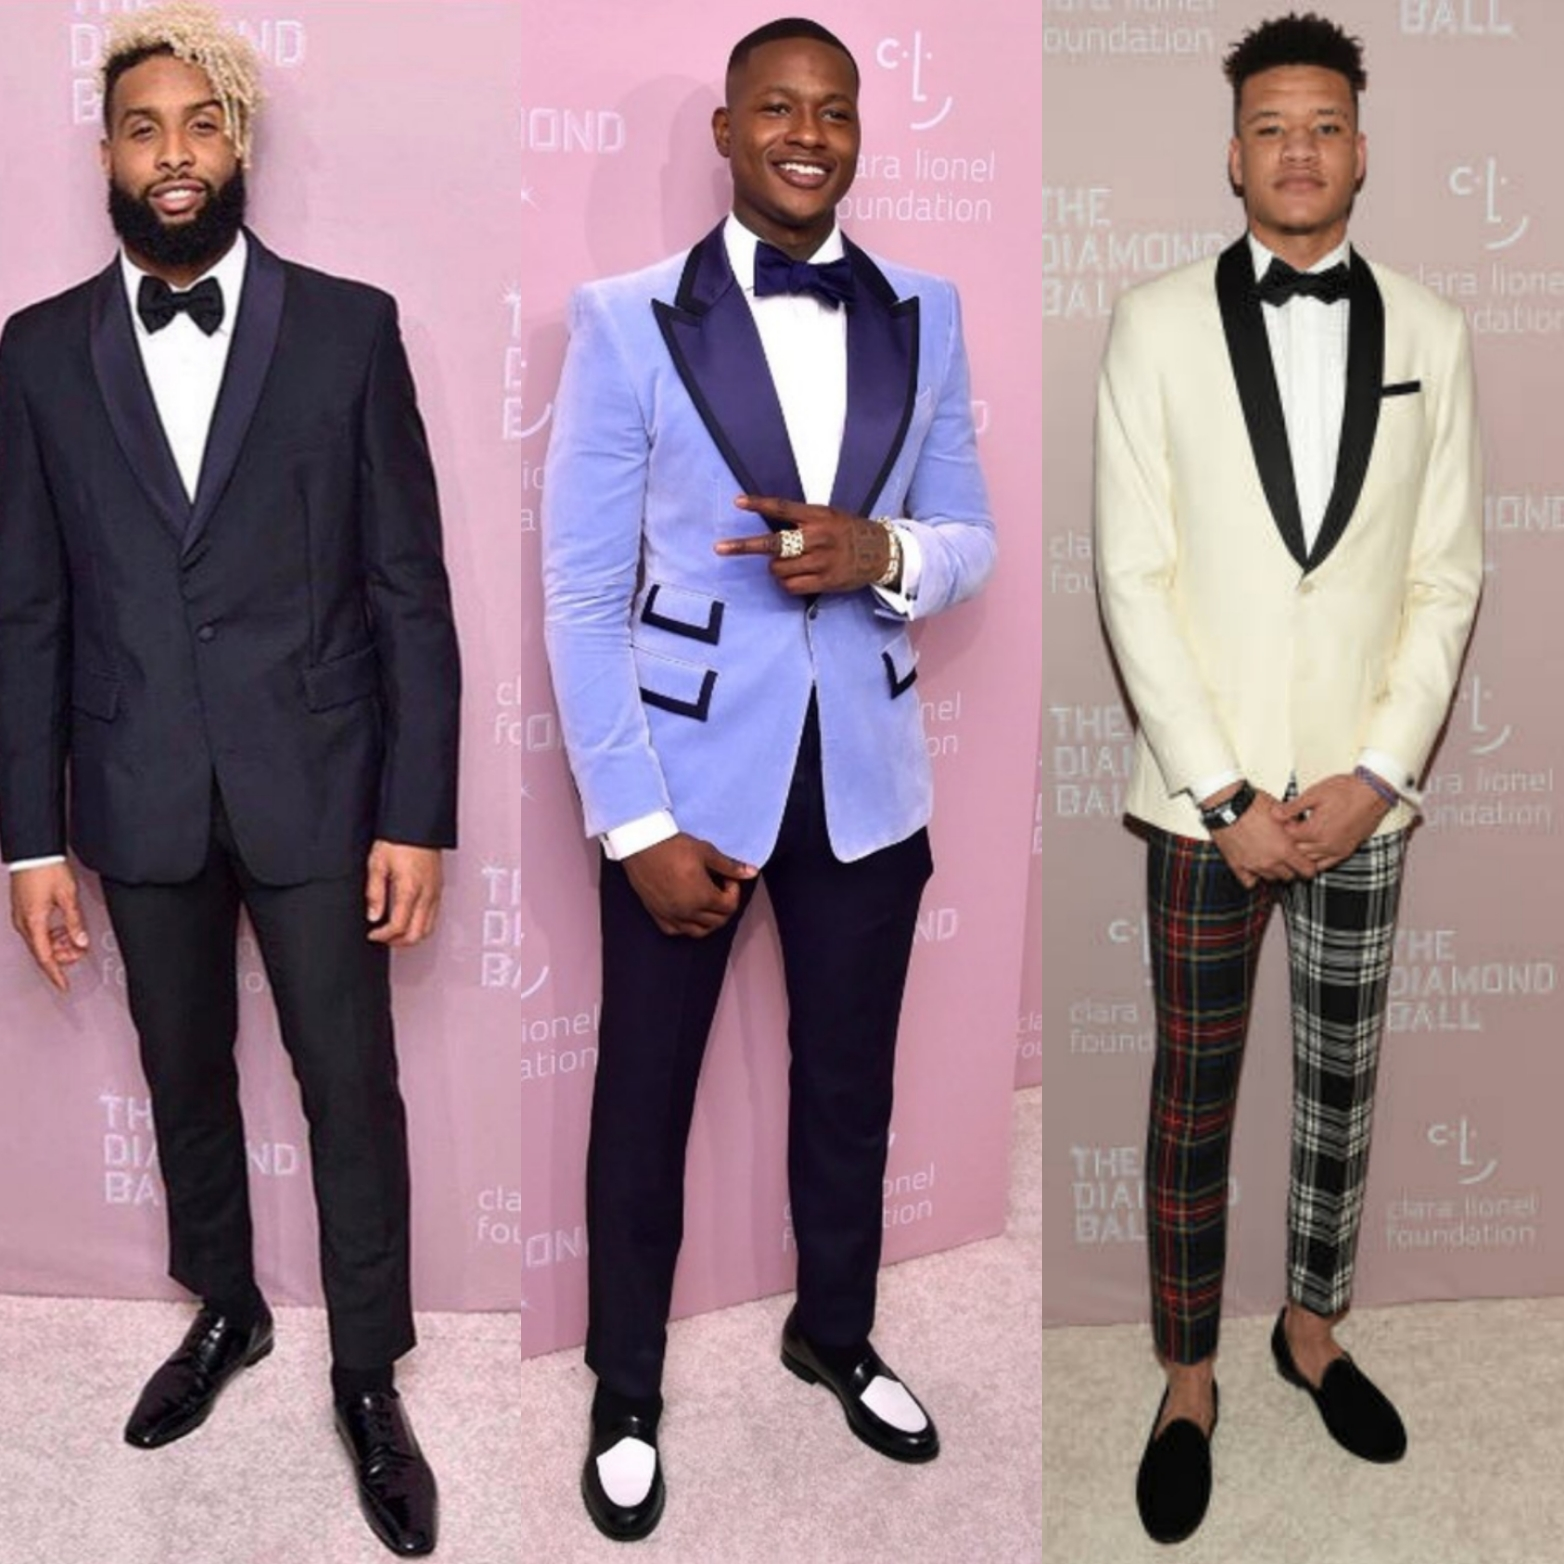 Diamond Ball 2018: Athletes Odell Beckham Jr, Terry Rozier & Kevin Knox Make An Appearance